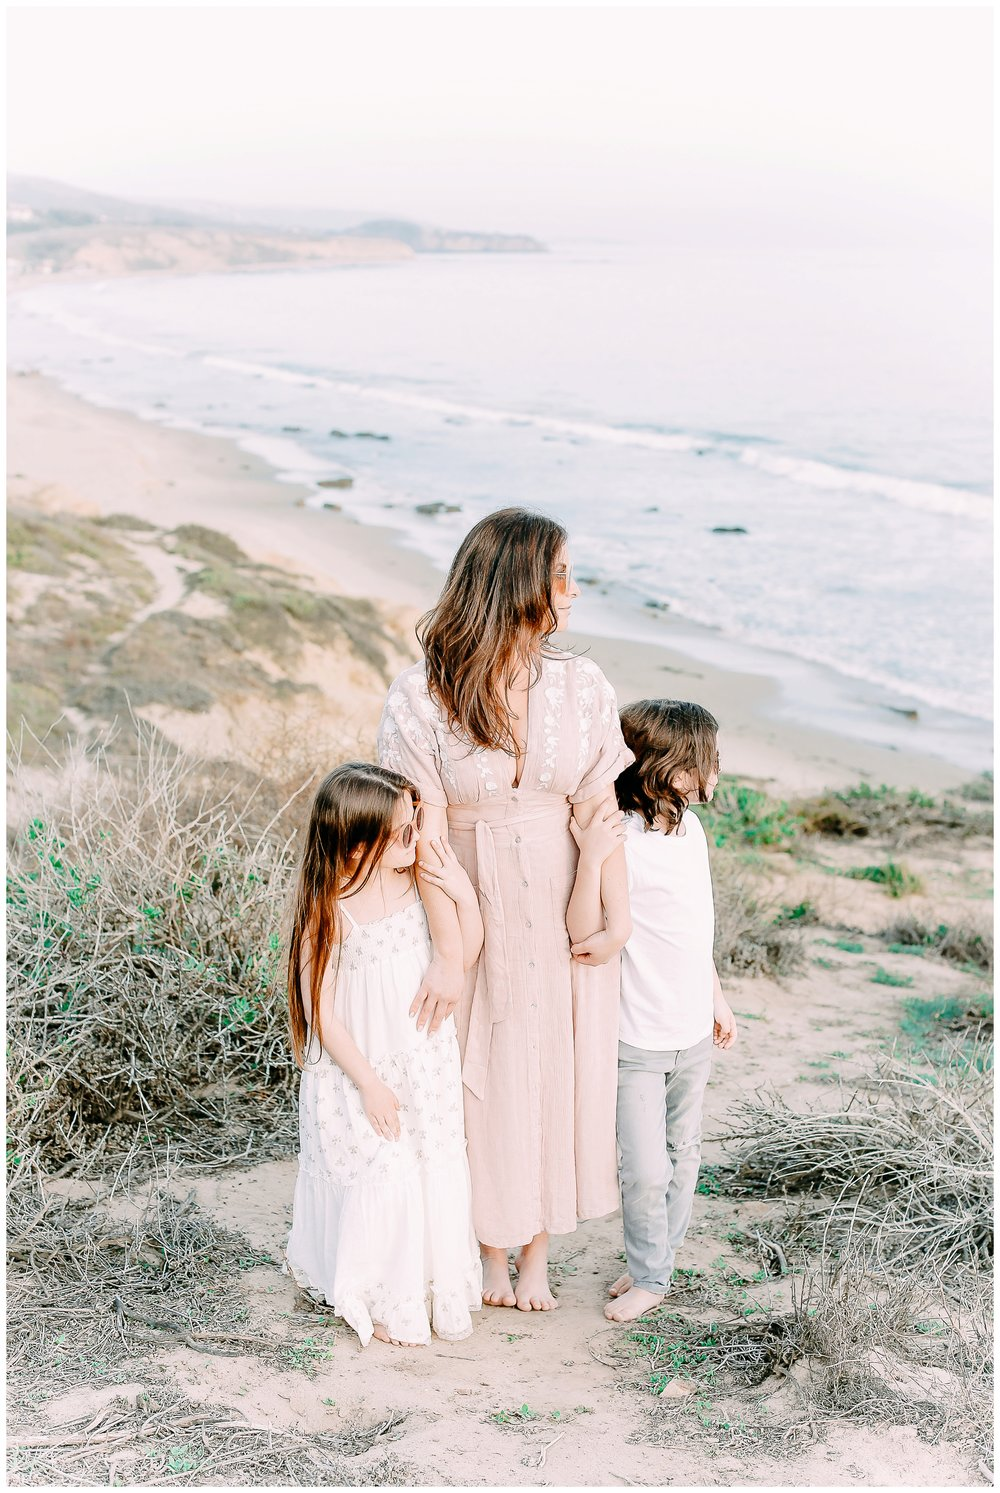 Crystal-Cove-State-Beach-Motherhood- Session-Crystal-Cove-Newport-Beach-Family-Photographer-Crystal-Cove-Minnow-Swim-Cori-Kleckner-Photography-Orange-County-Vacation-Family-Photos-Session-_0850.jpg